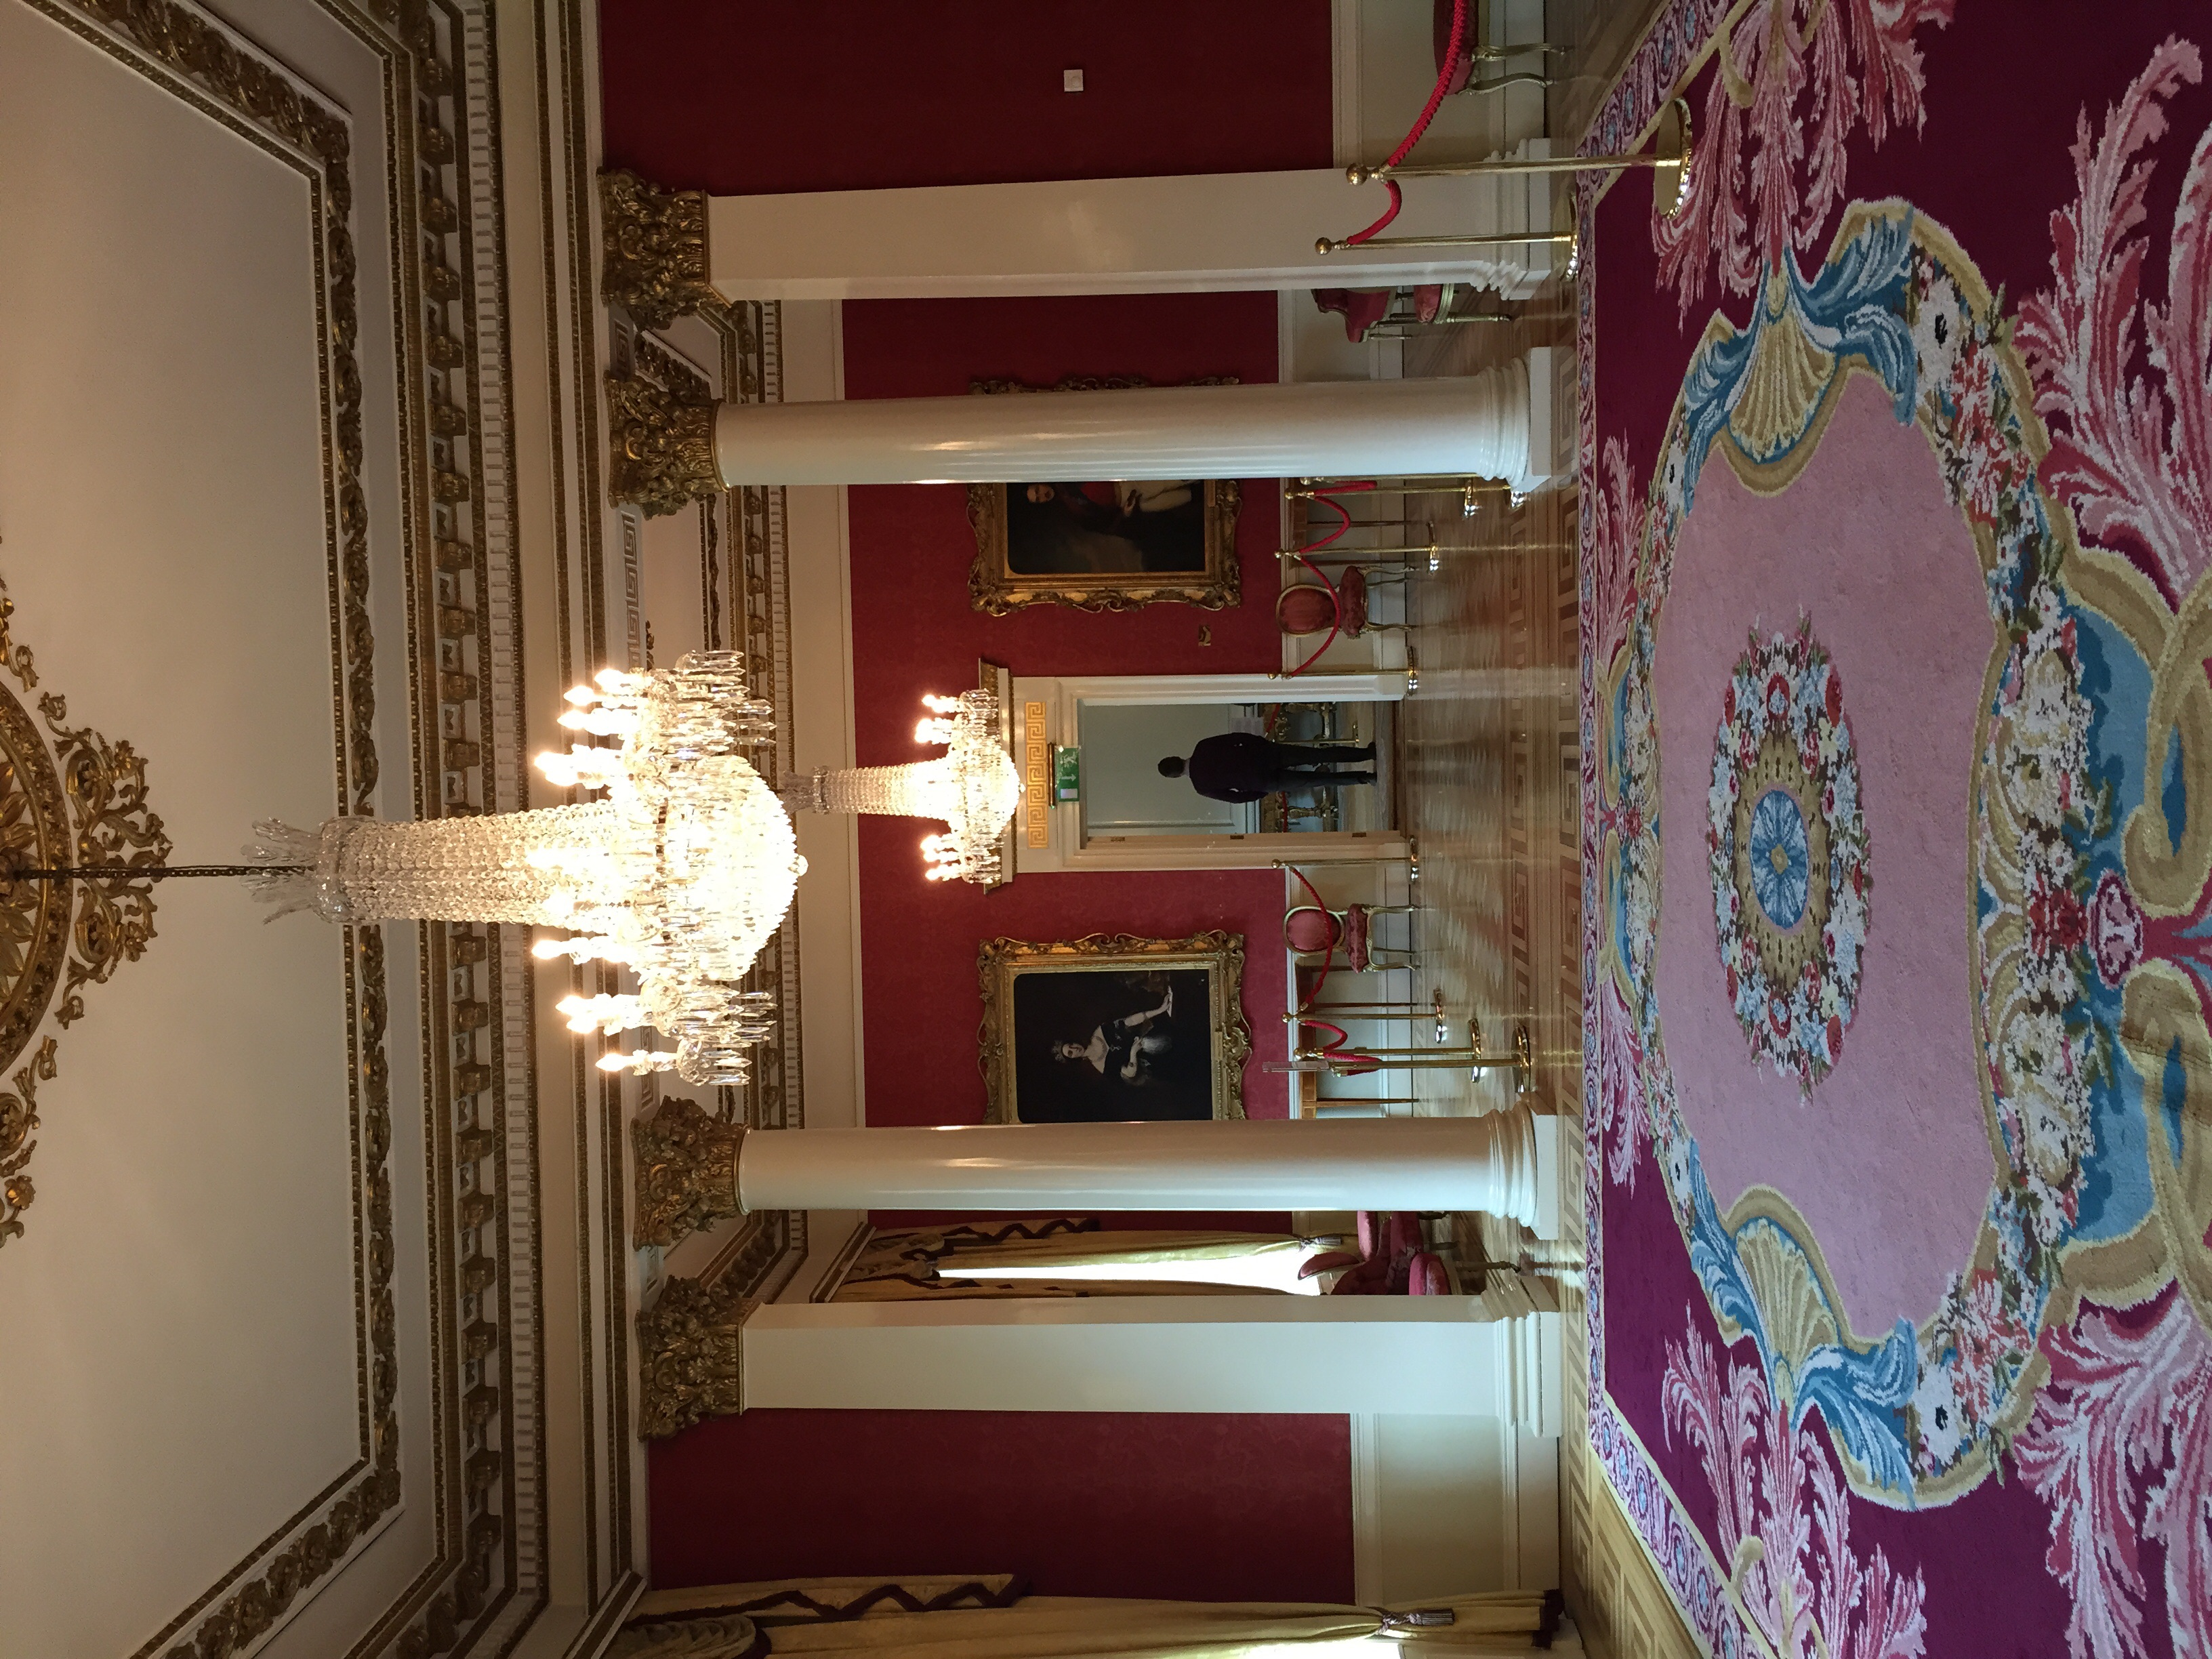 The drawing room of Dublin Castle.